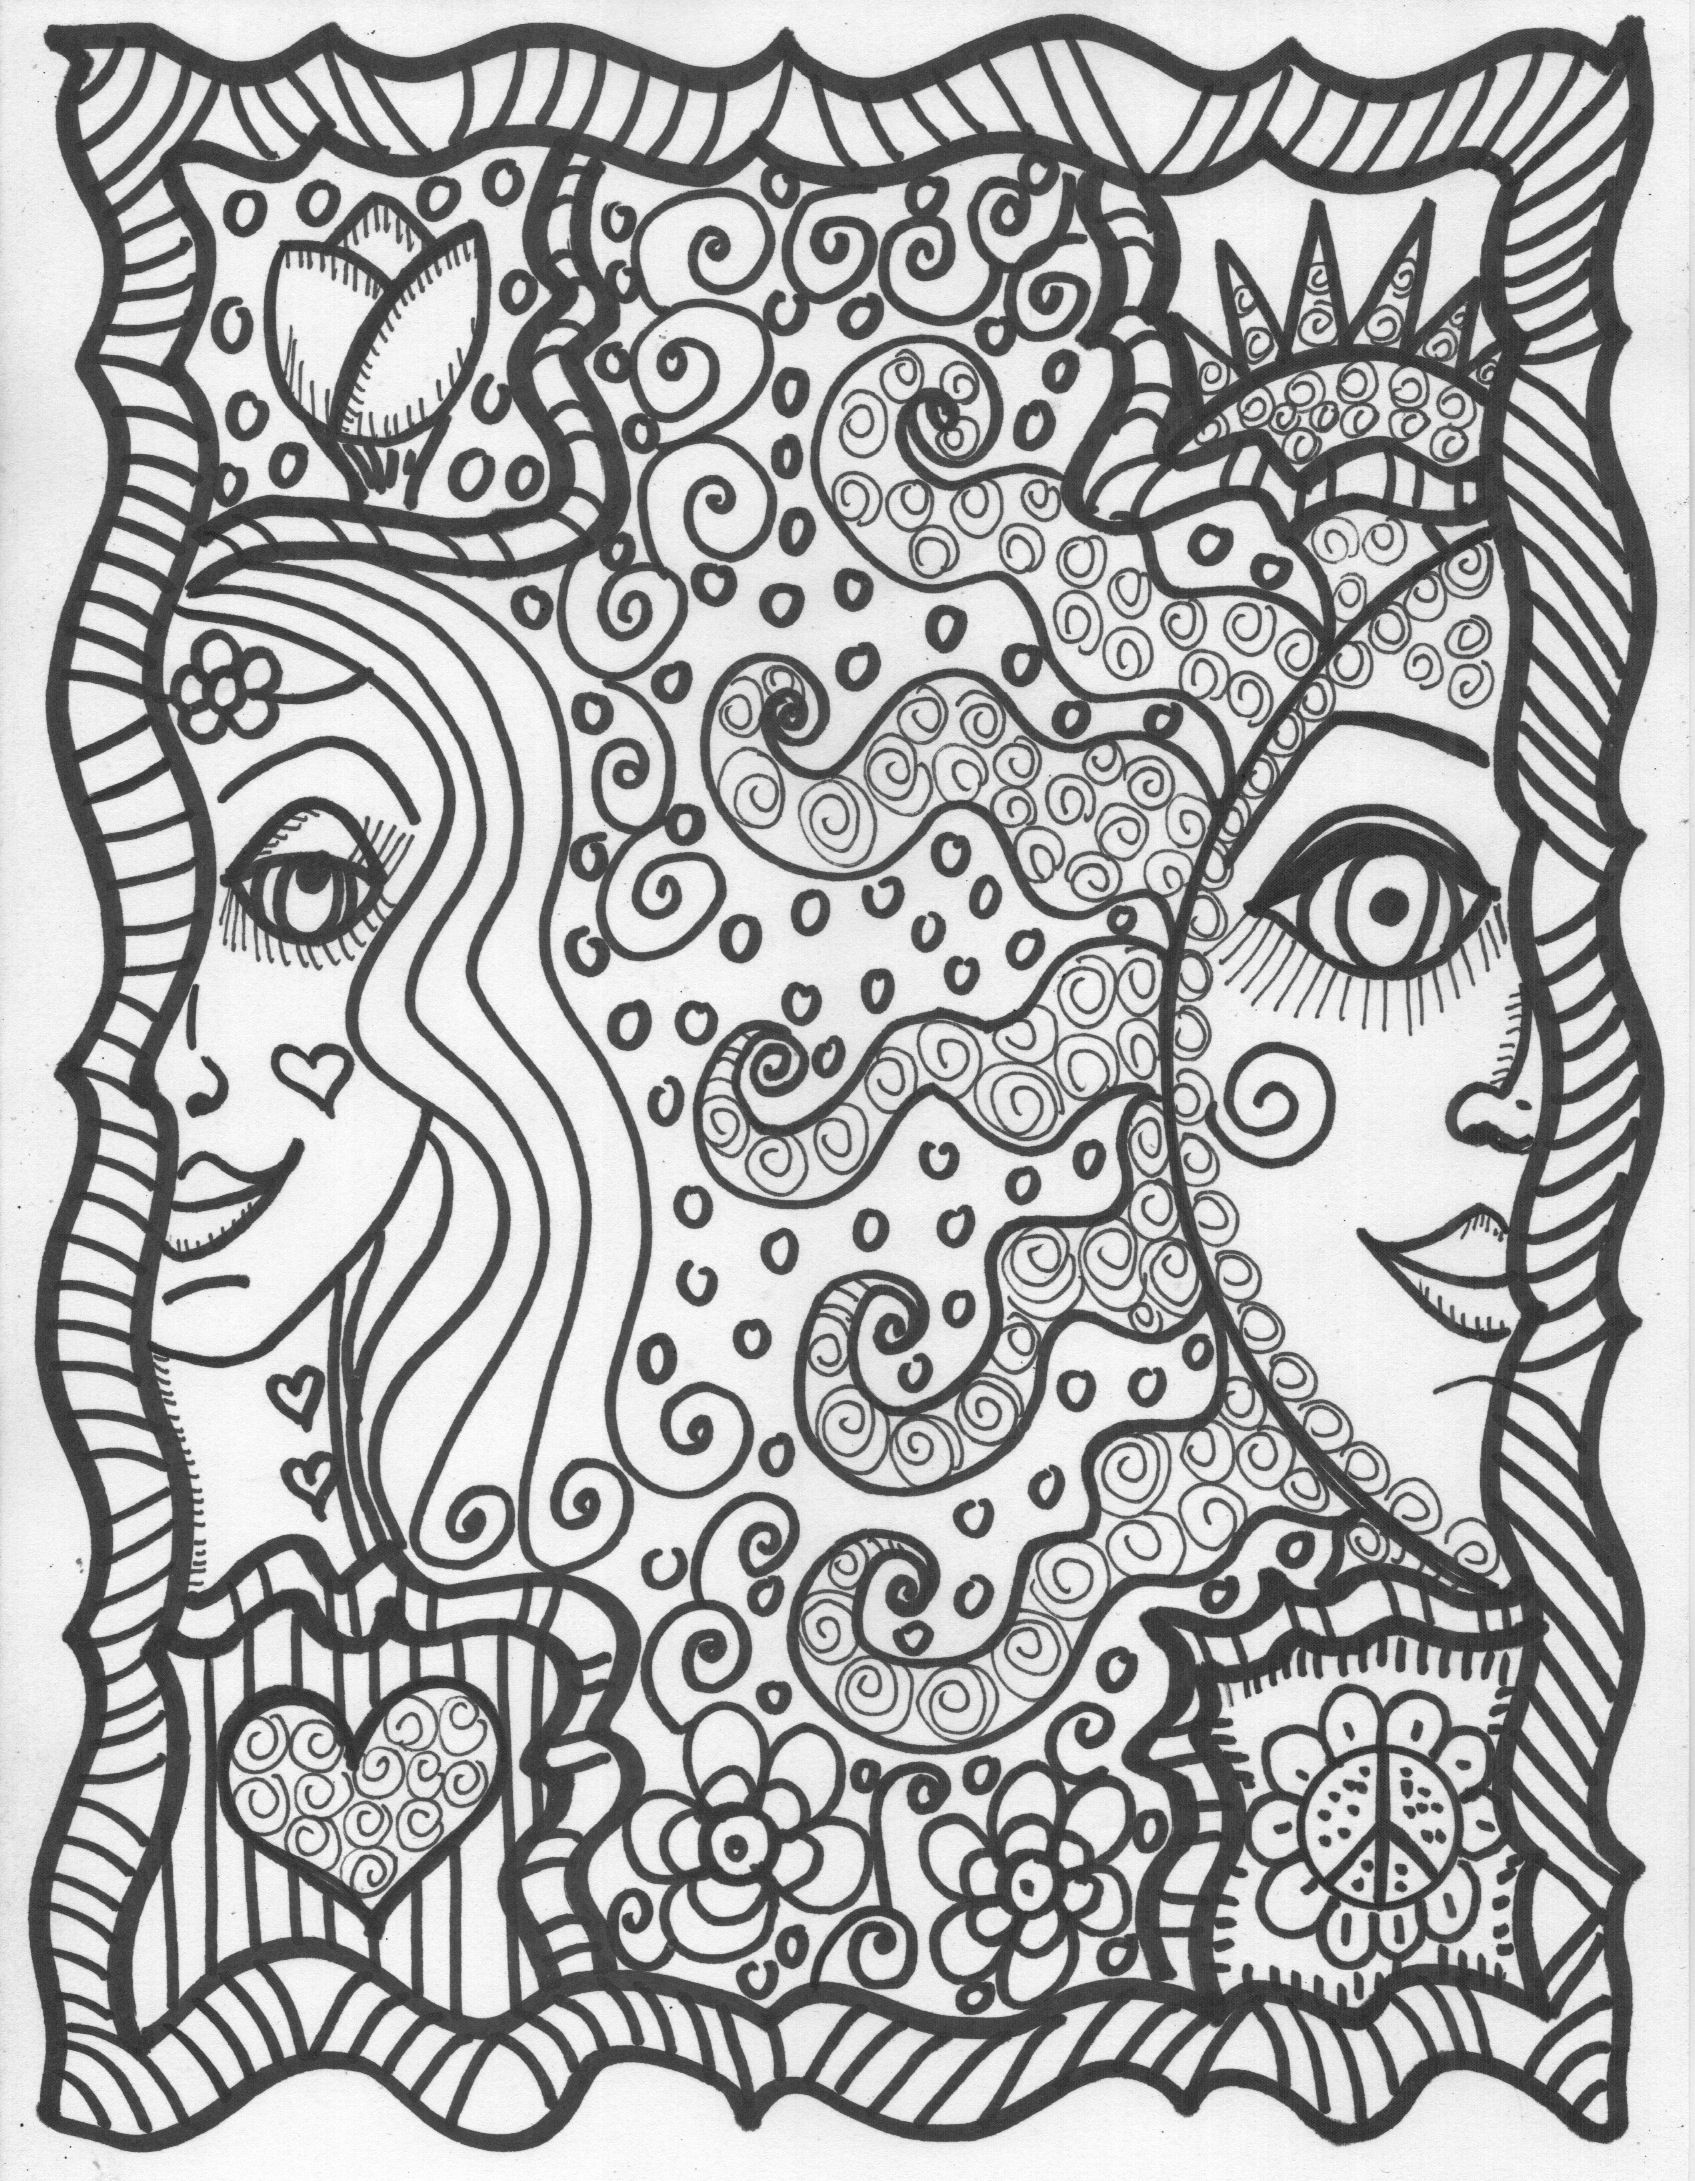 13 Pics of Hippie Designs Coloring Pages - Hippie Coloring Pages ...